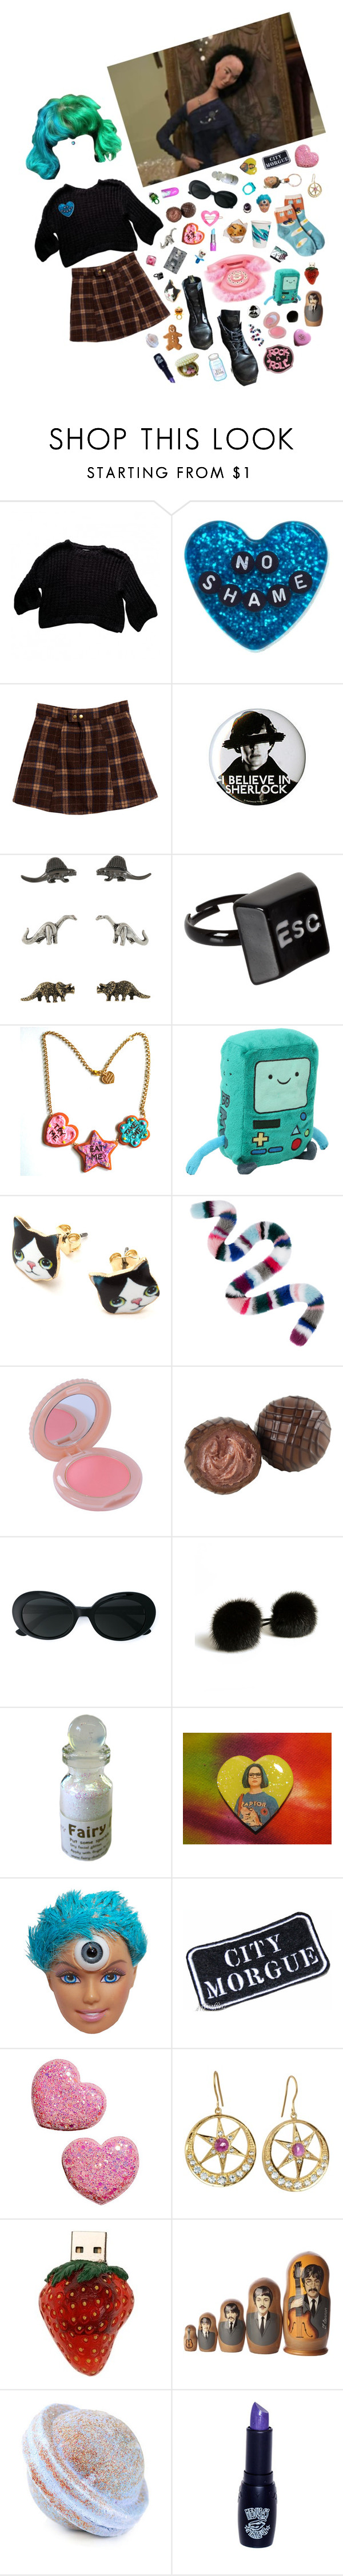 """""""Body and soul, i'm a freak"""" by queenofrocknroll ❤ liked on Polyvore featuring Monki, Sourpuss, CASSETTE, Dr. Martens, ASOS, Charlotte Simone, Paul & Joe, Yves Saint Laurent, Jennifer Behr and Lucky Brand"""